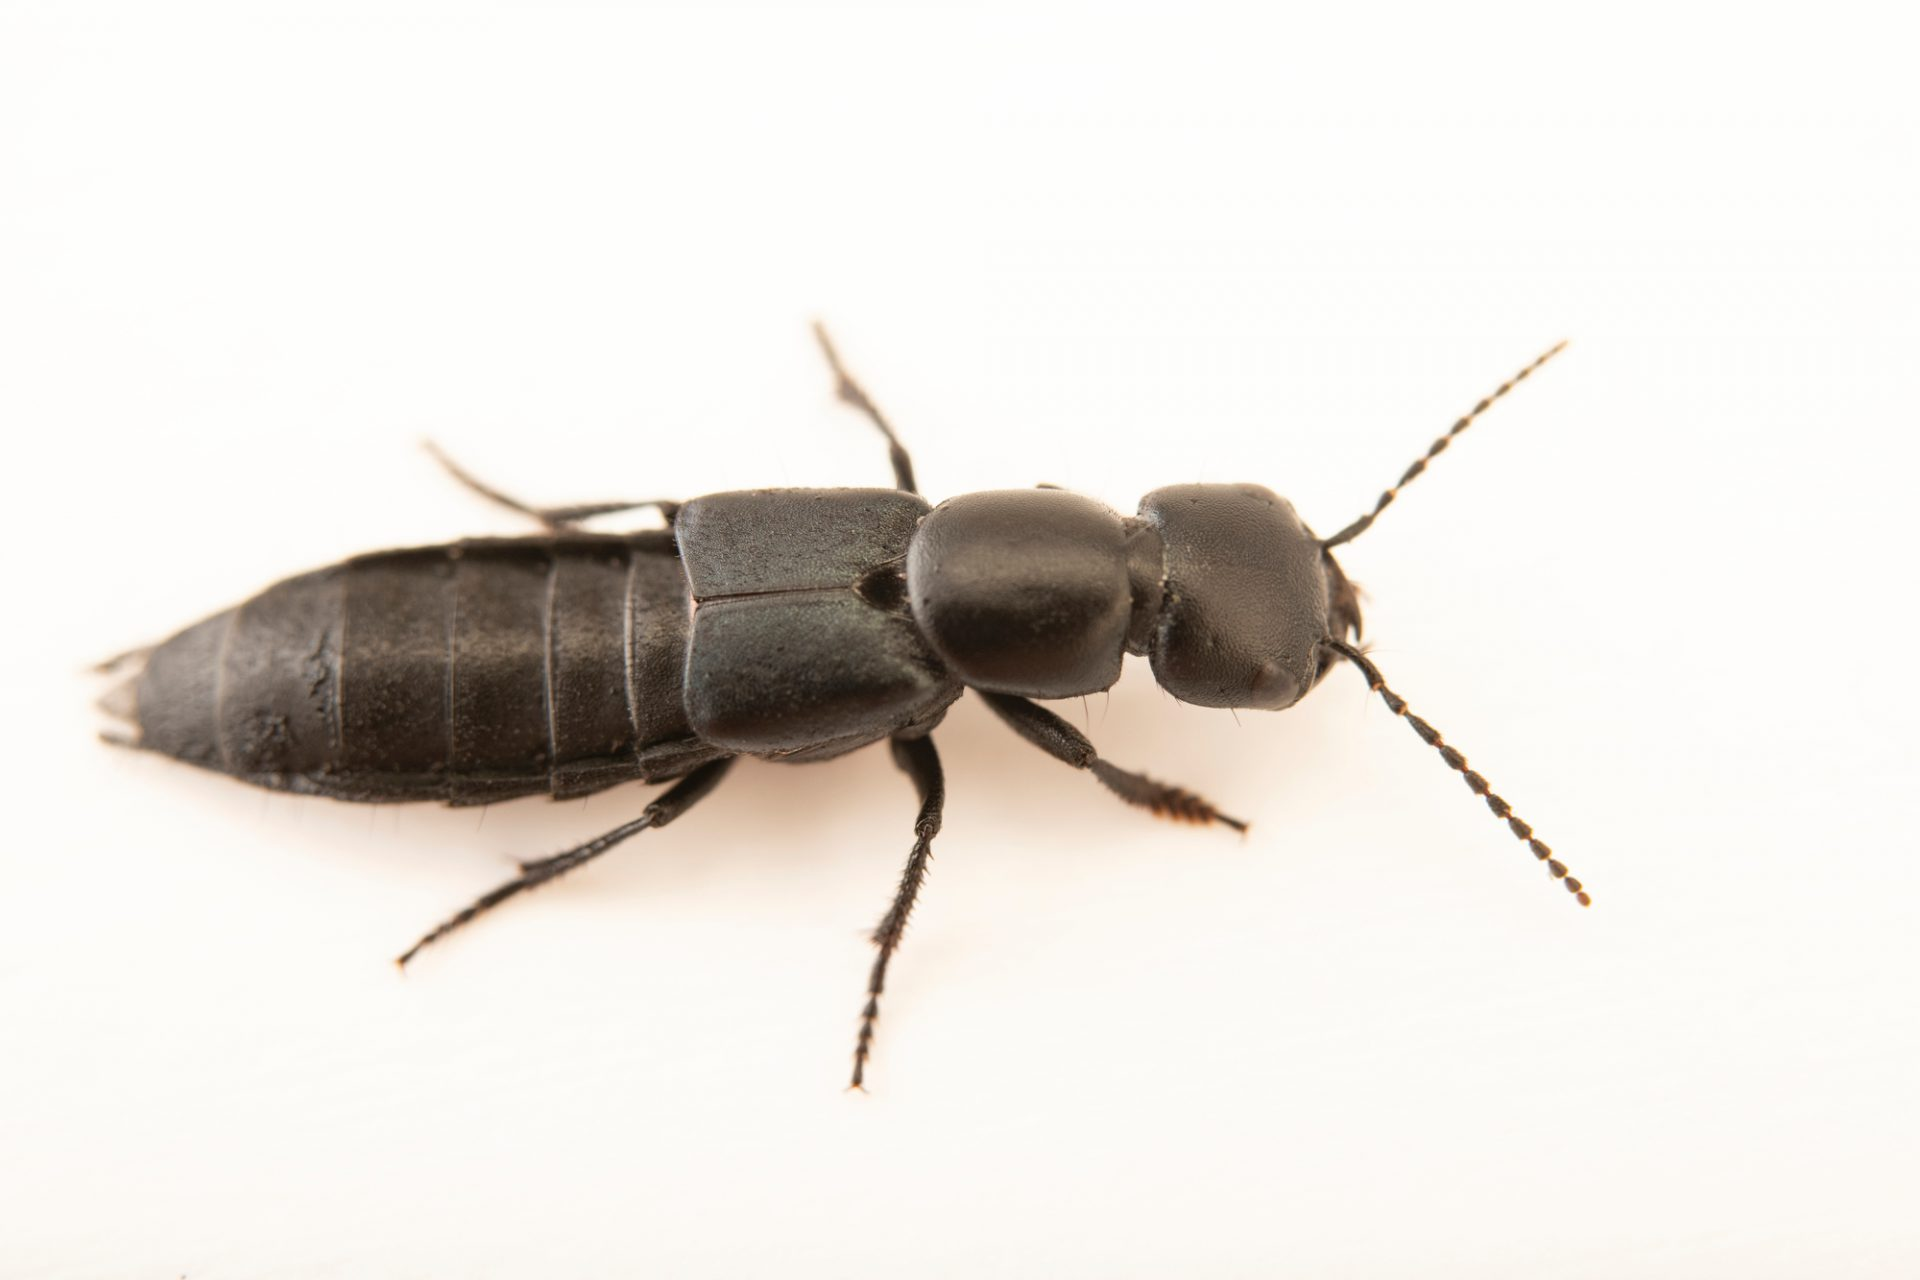 Photo: Devil's coach horse beetle (Ocypus olens) at Graham's Quinta dos Malvedos Vineyard.